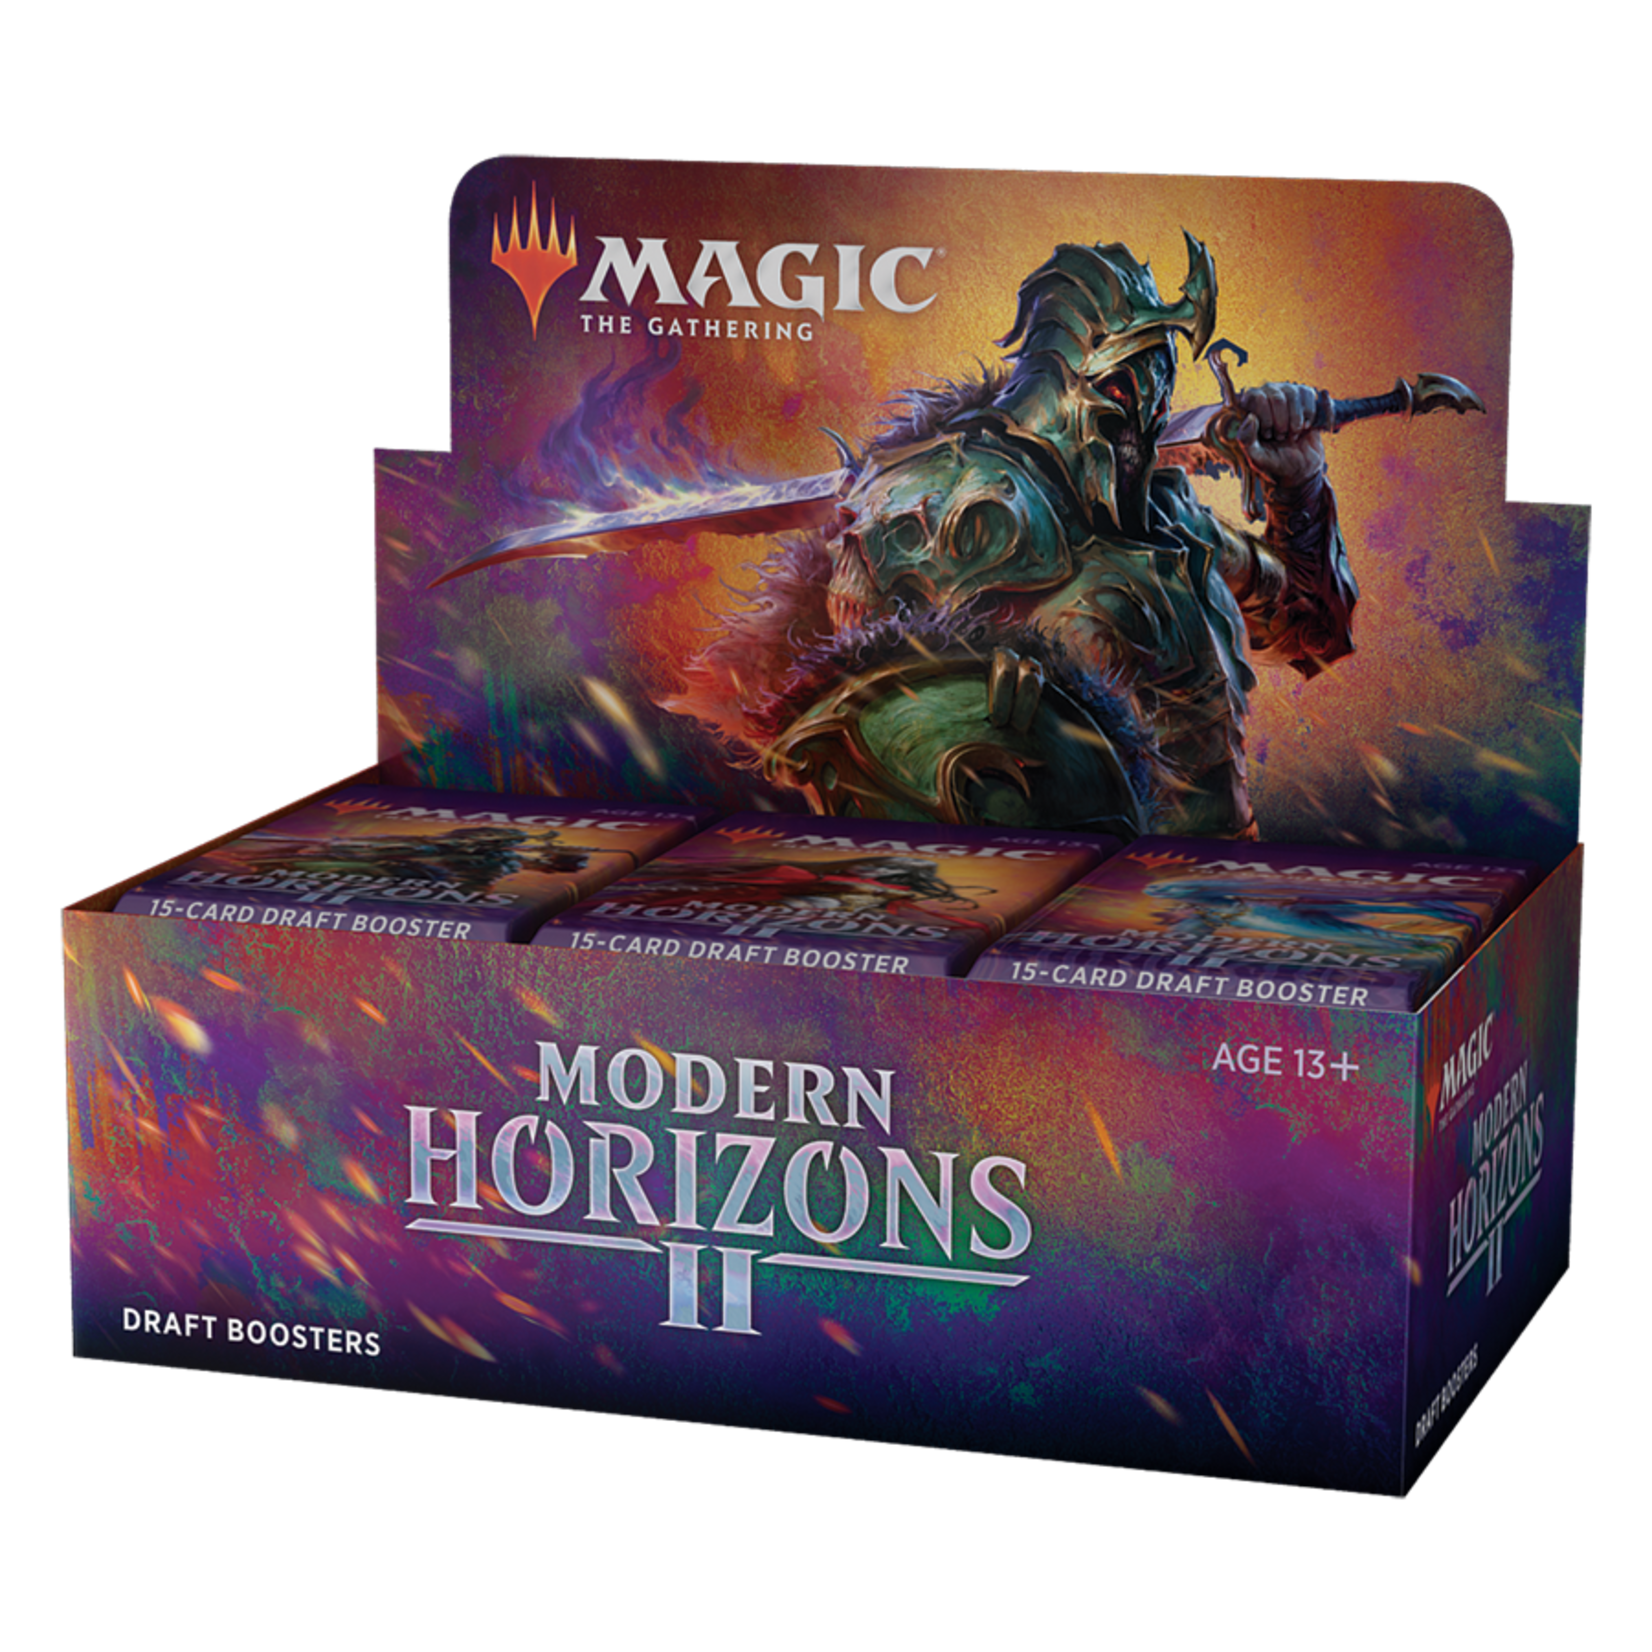 Wizards of the Coast Magic the Gathering: Modern Horizons 2 - Draft Booster Box (Preorder)